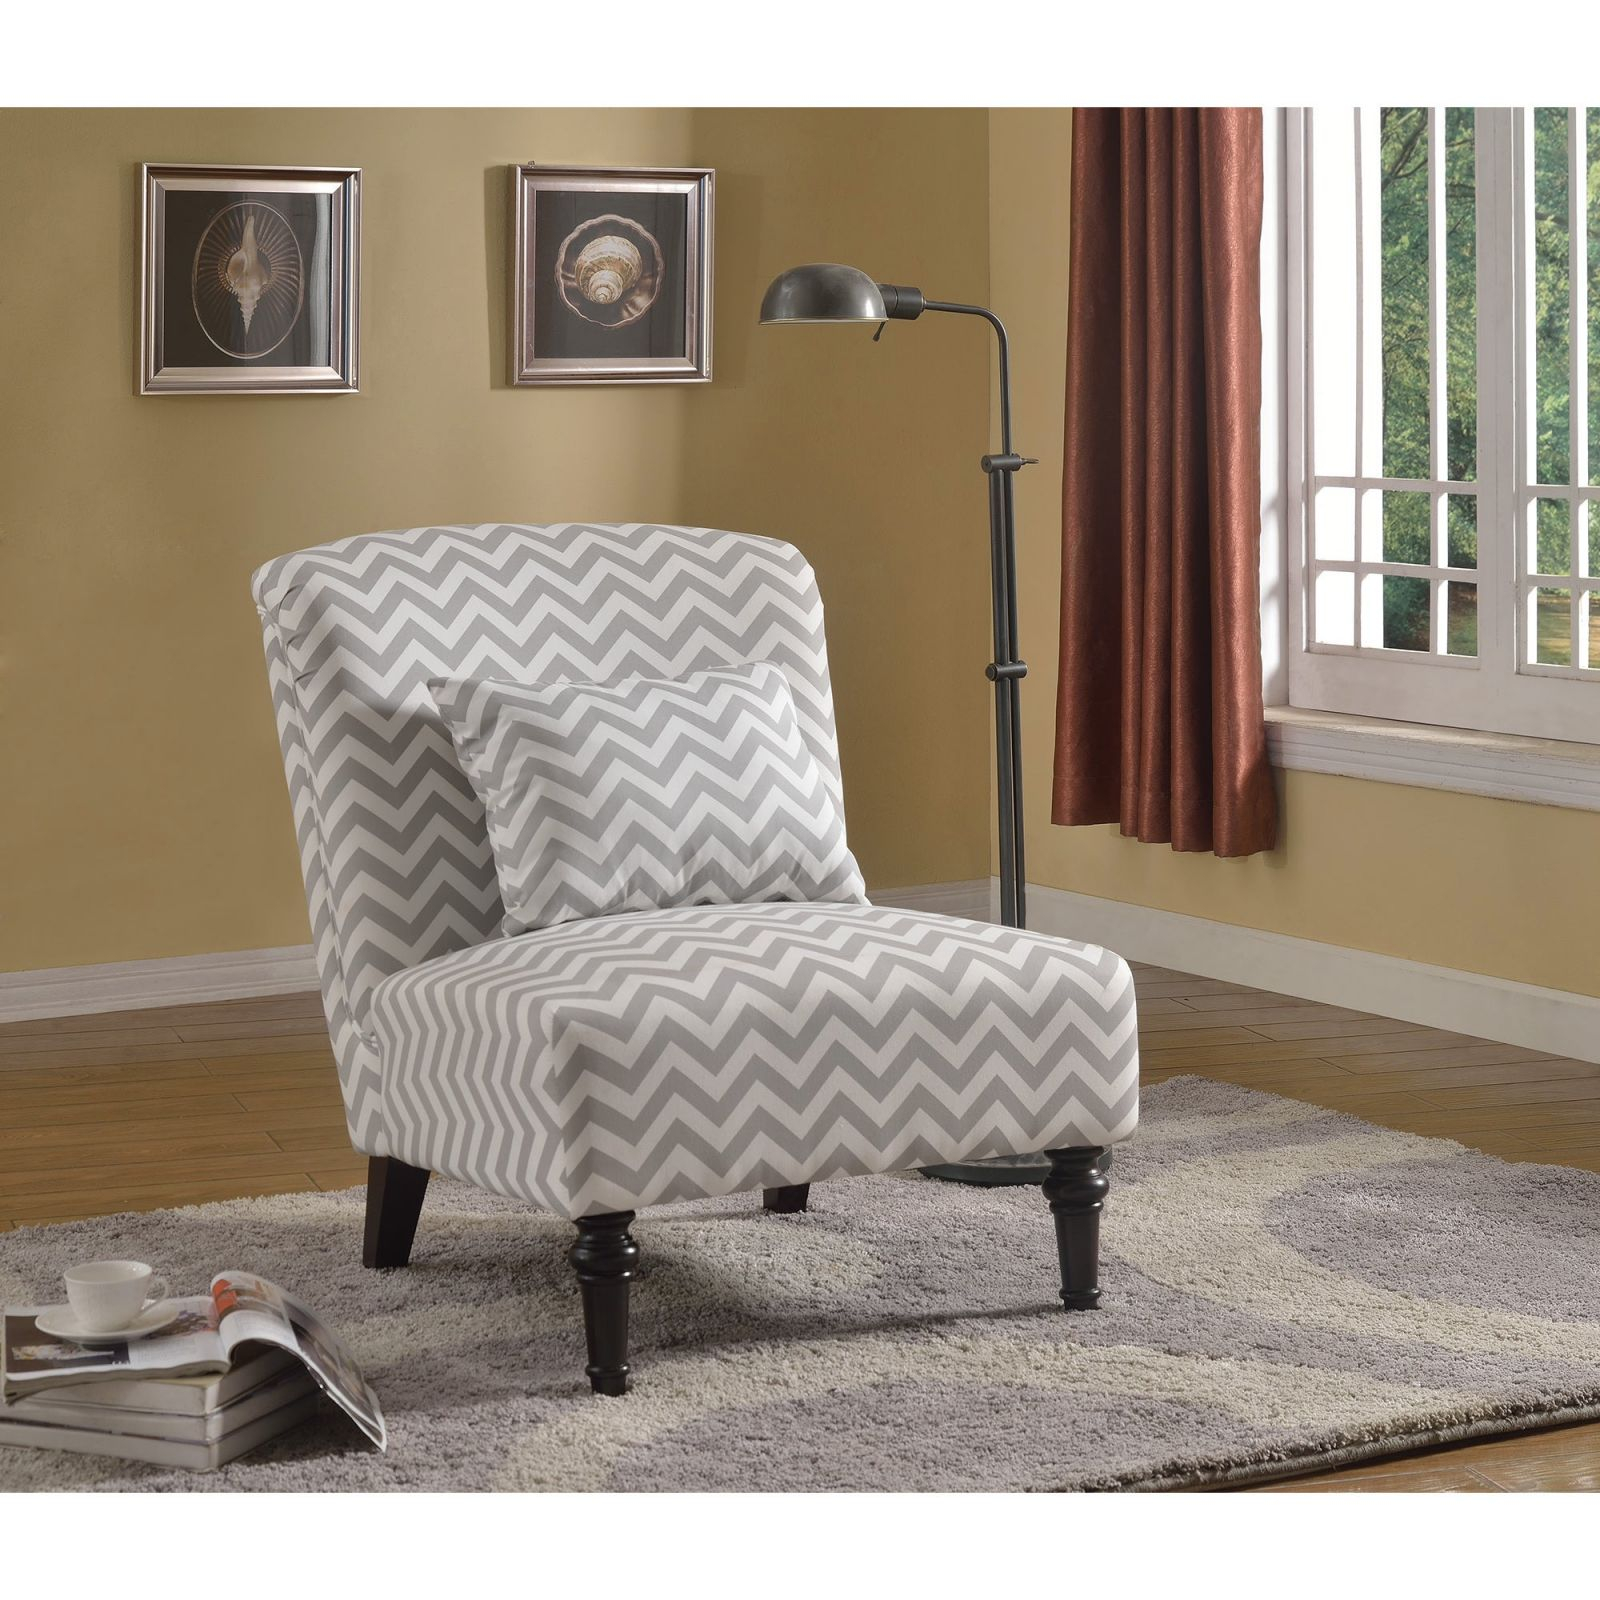 Best Master Furniture Coastal Living Room Accent Chair for Best of Living Room Furniture Accent Chairs